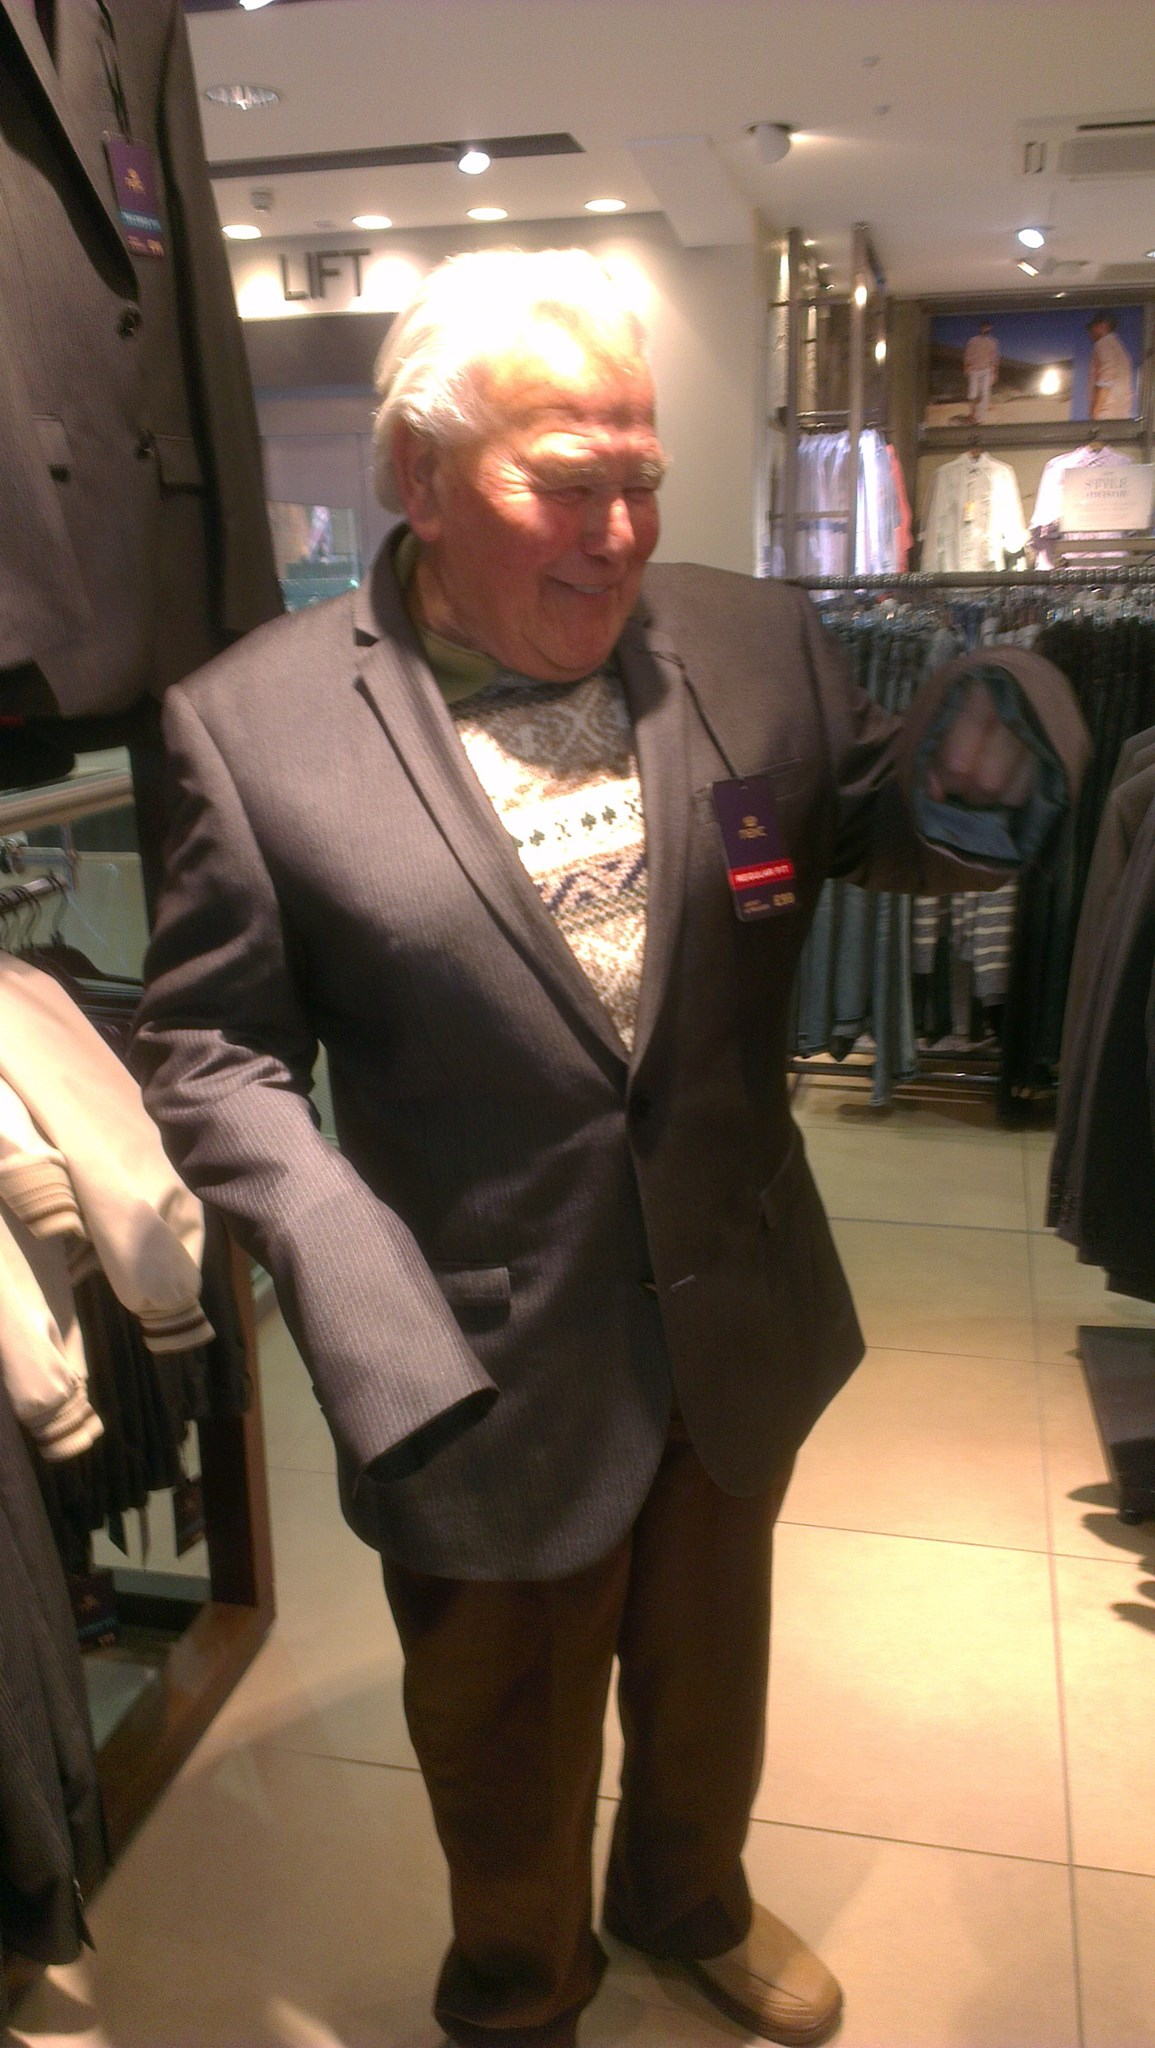 Trying to find a Wedding suit.  That one's a bit too big Dad.